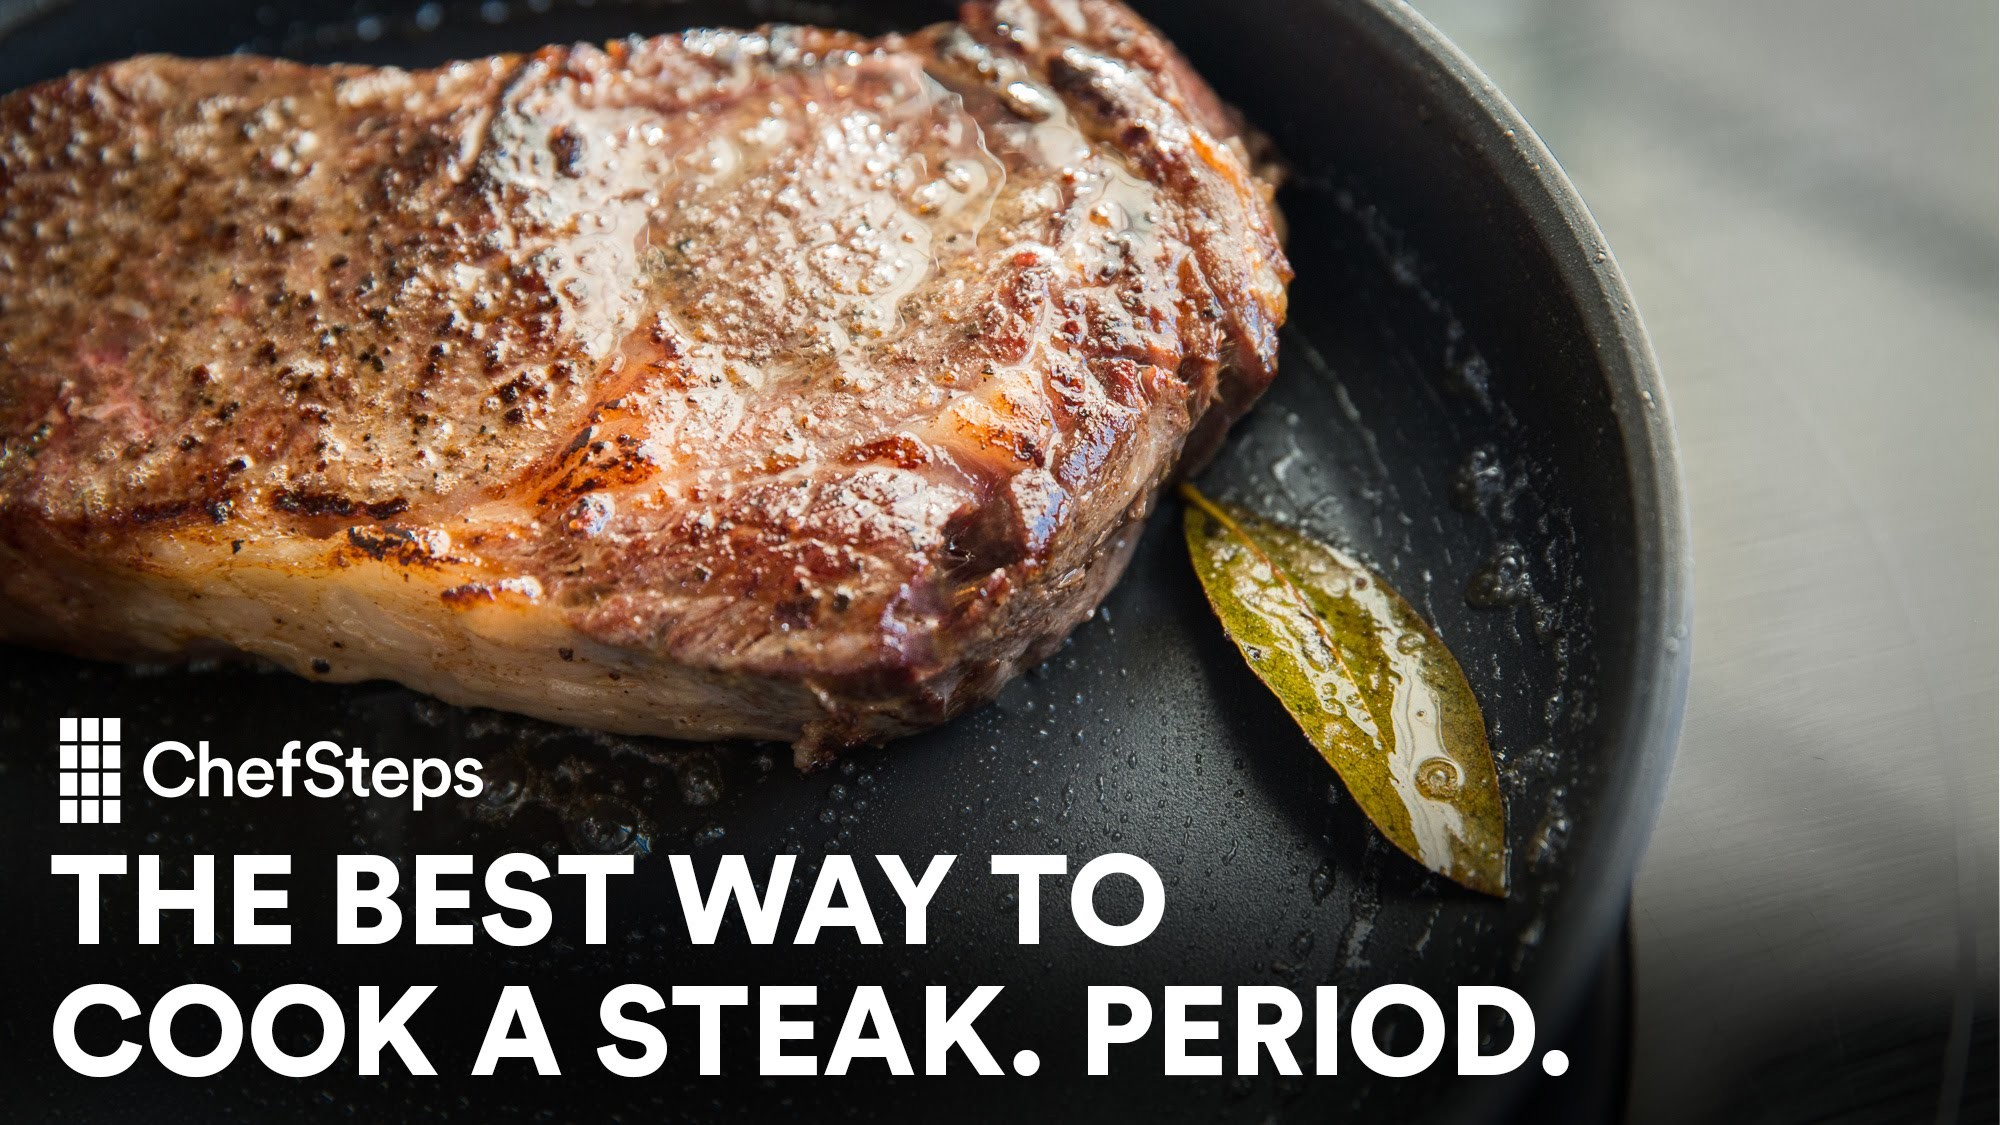 The Best Way to Cook a Steak. Period.